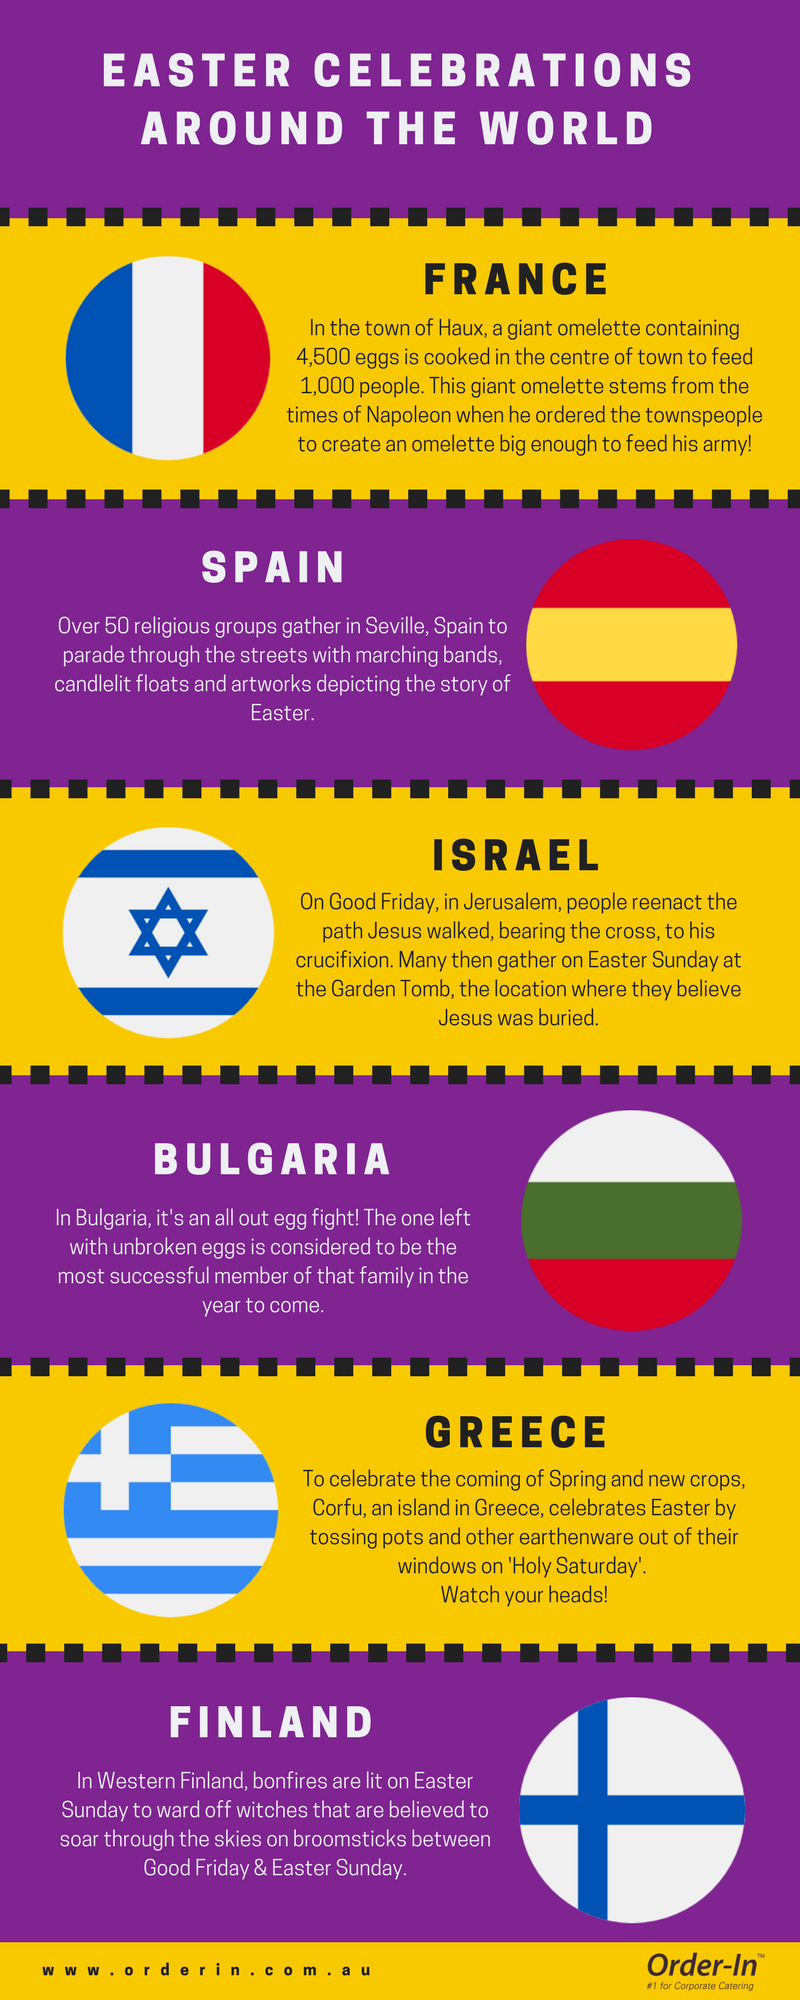 Easter celebrations around the world infographic